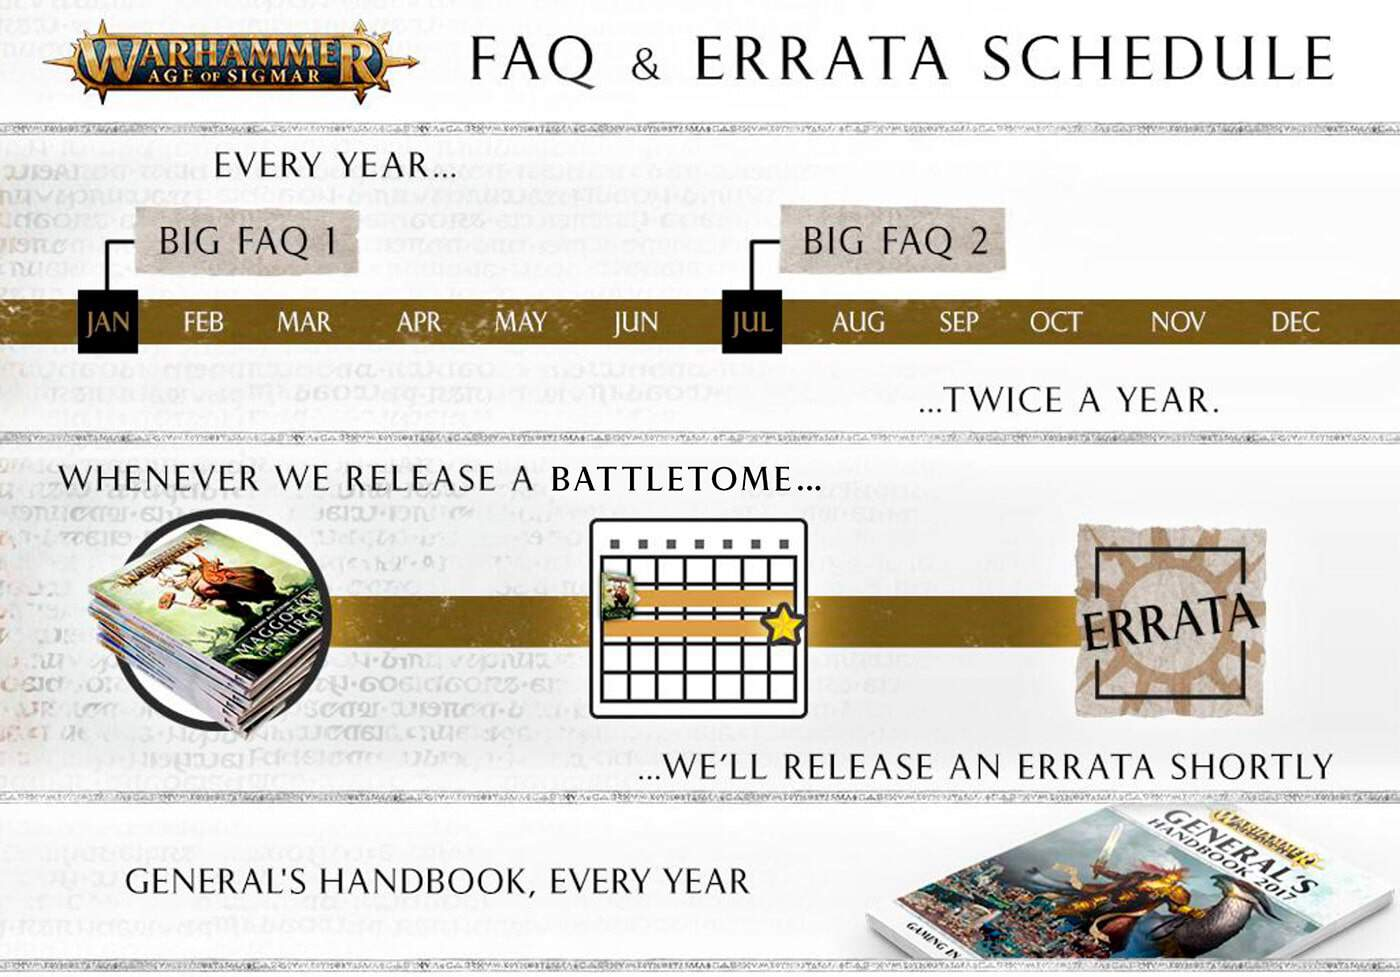 This is a picture of the FAQ model for AoS. There is a big FAQ in January and July of each year. Two weeks after a battletome there is an errata for that tome and there is a new Generals Handbook each summer.